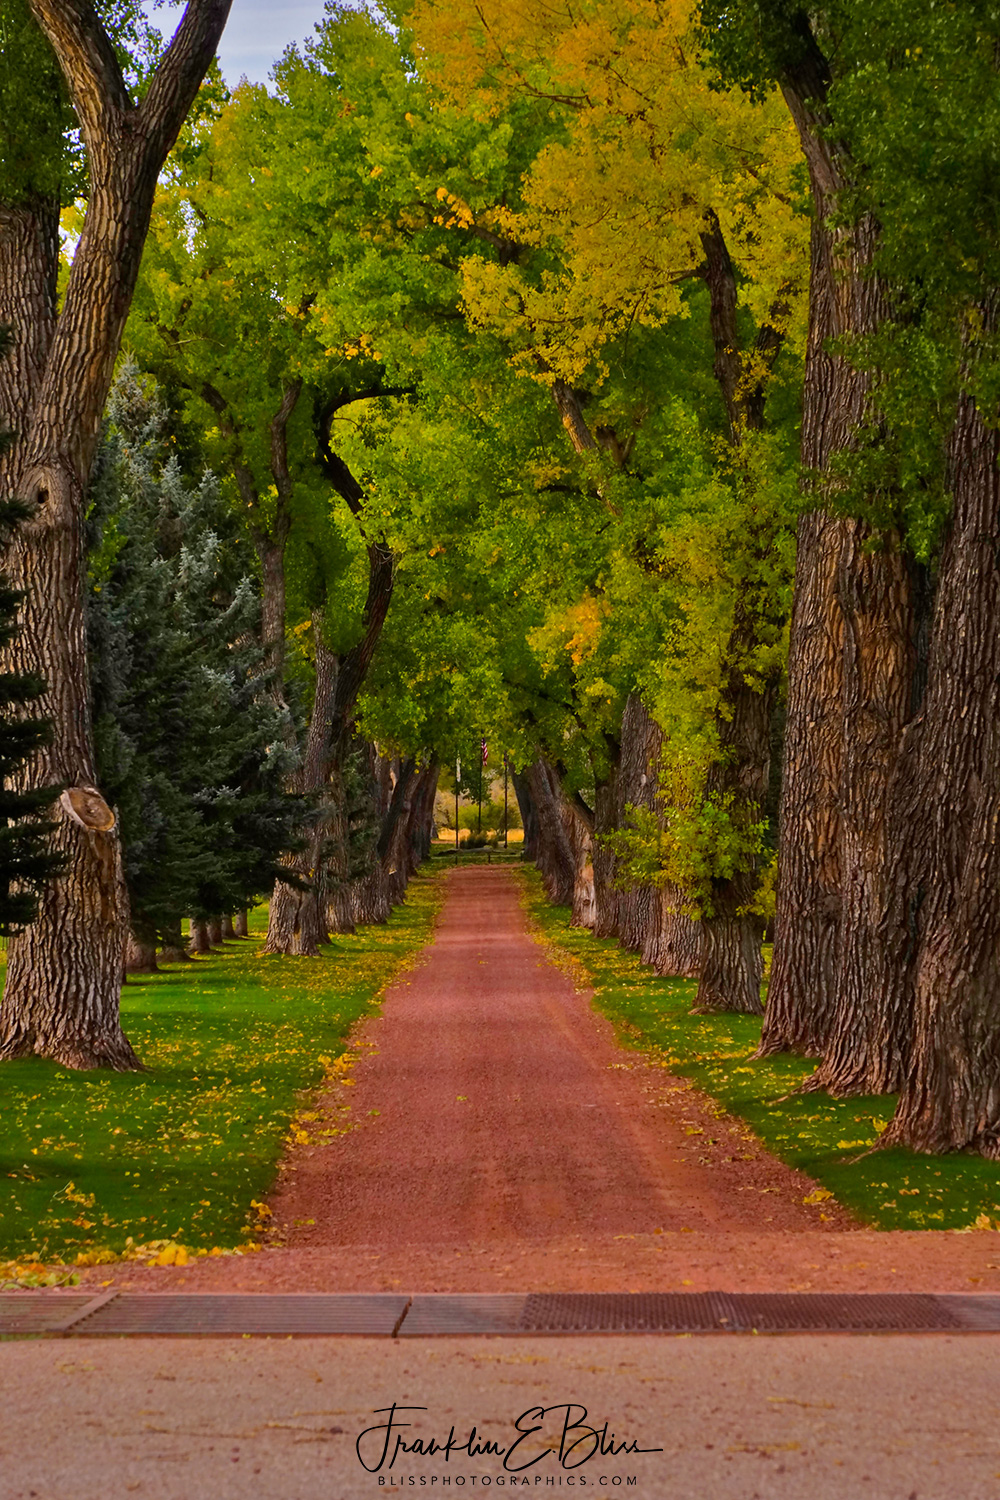 Best Driveway Ever!